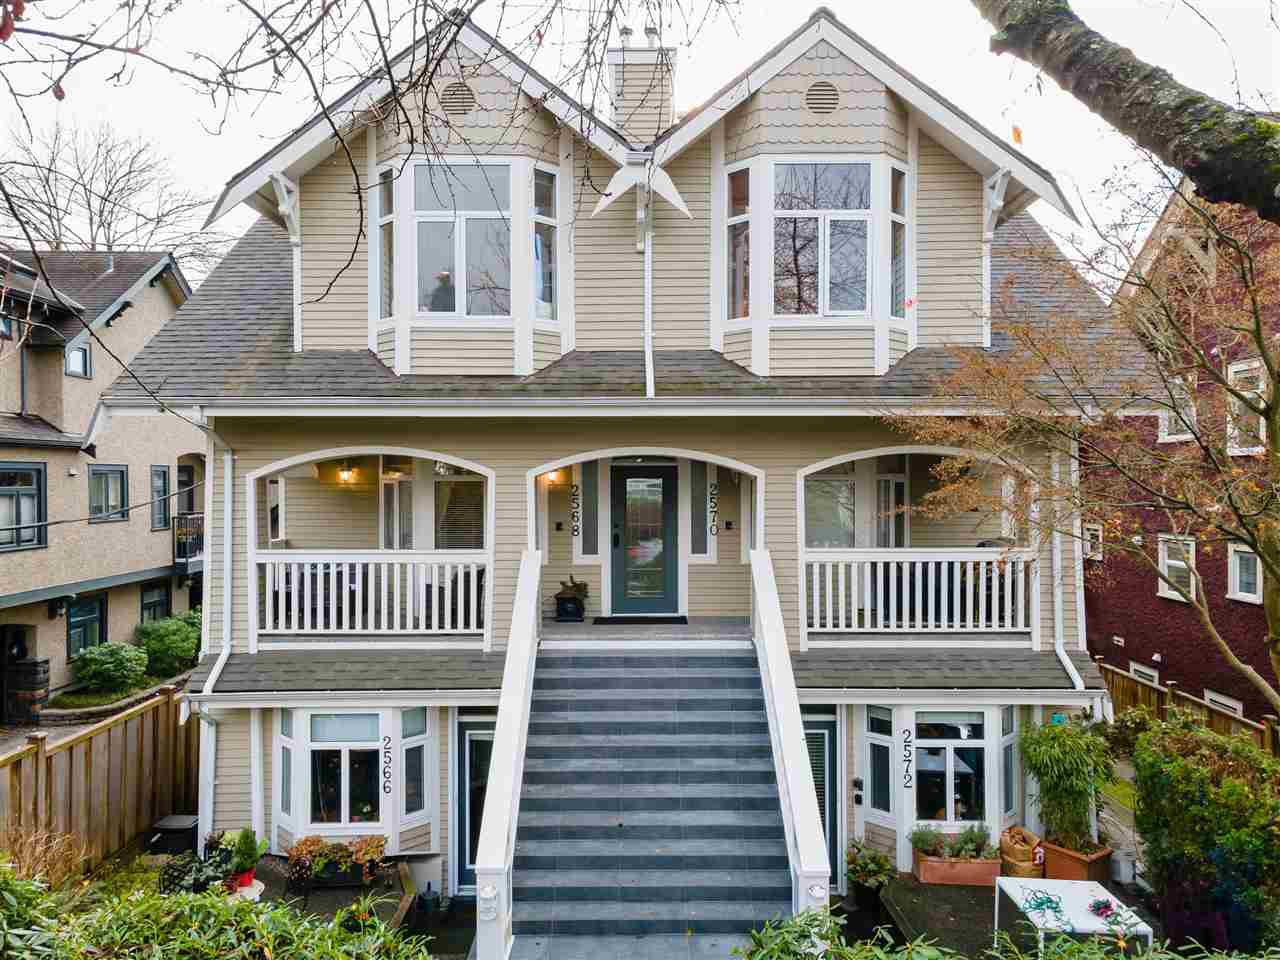 Main Photo: 2568 W 5TH Avenue in Vancouver: Kitsilano Townhouse for sale (Vancouver West)  : MLS®# R2521060